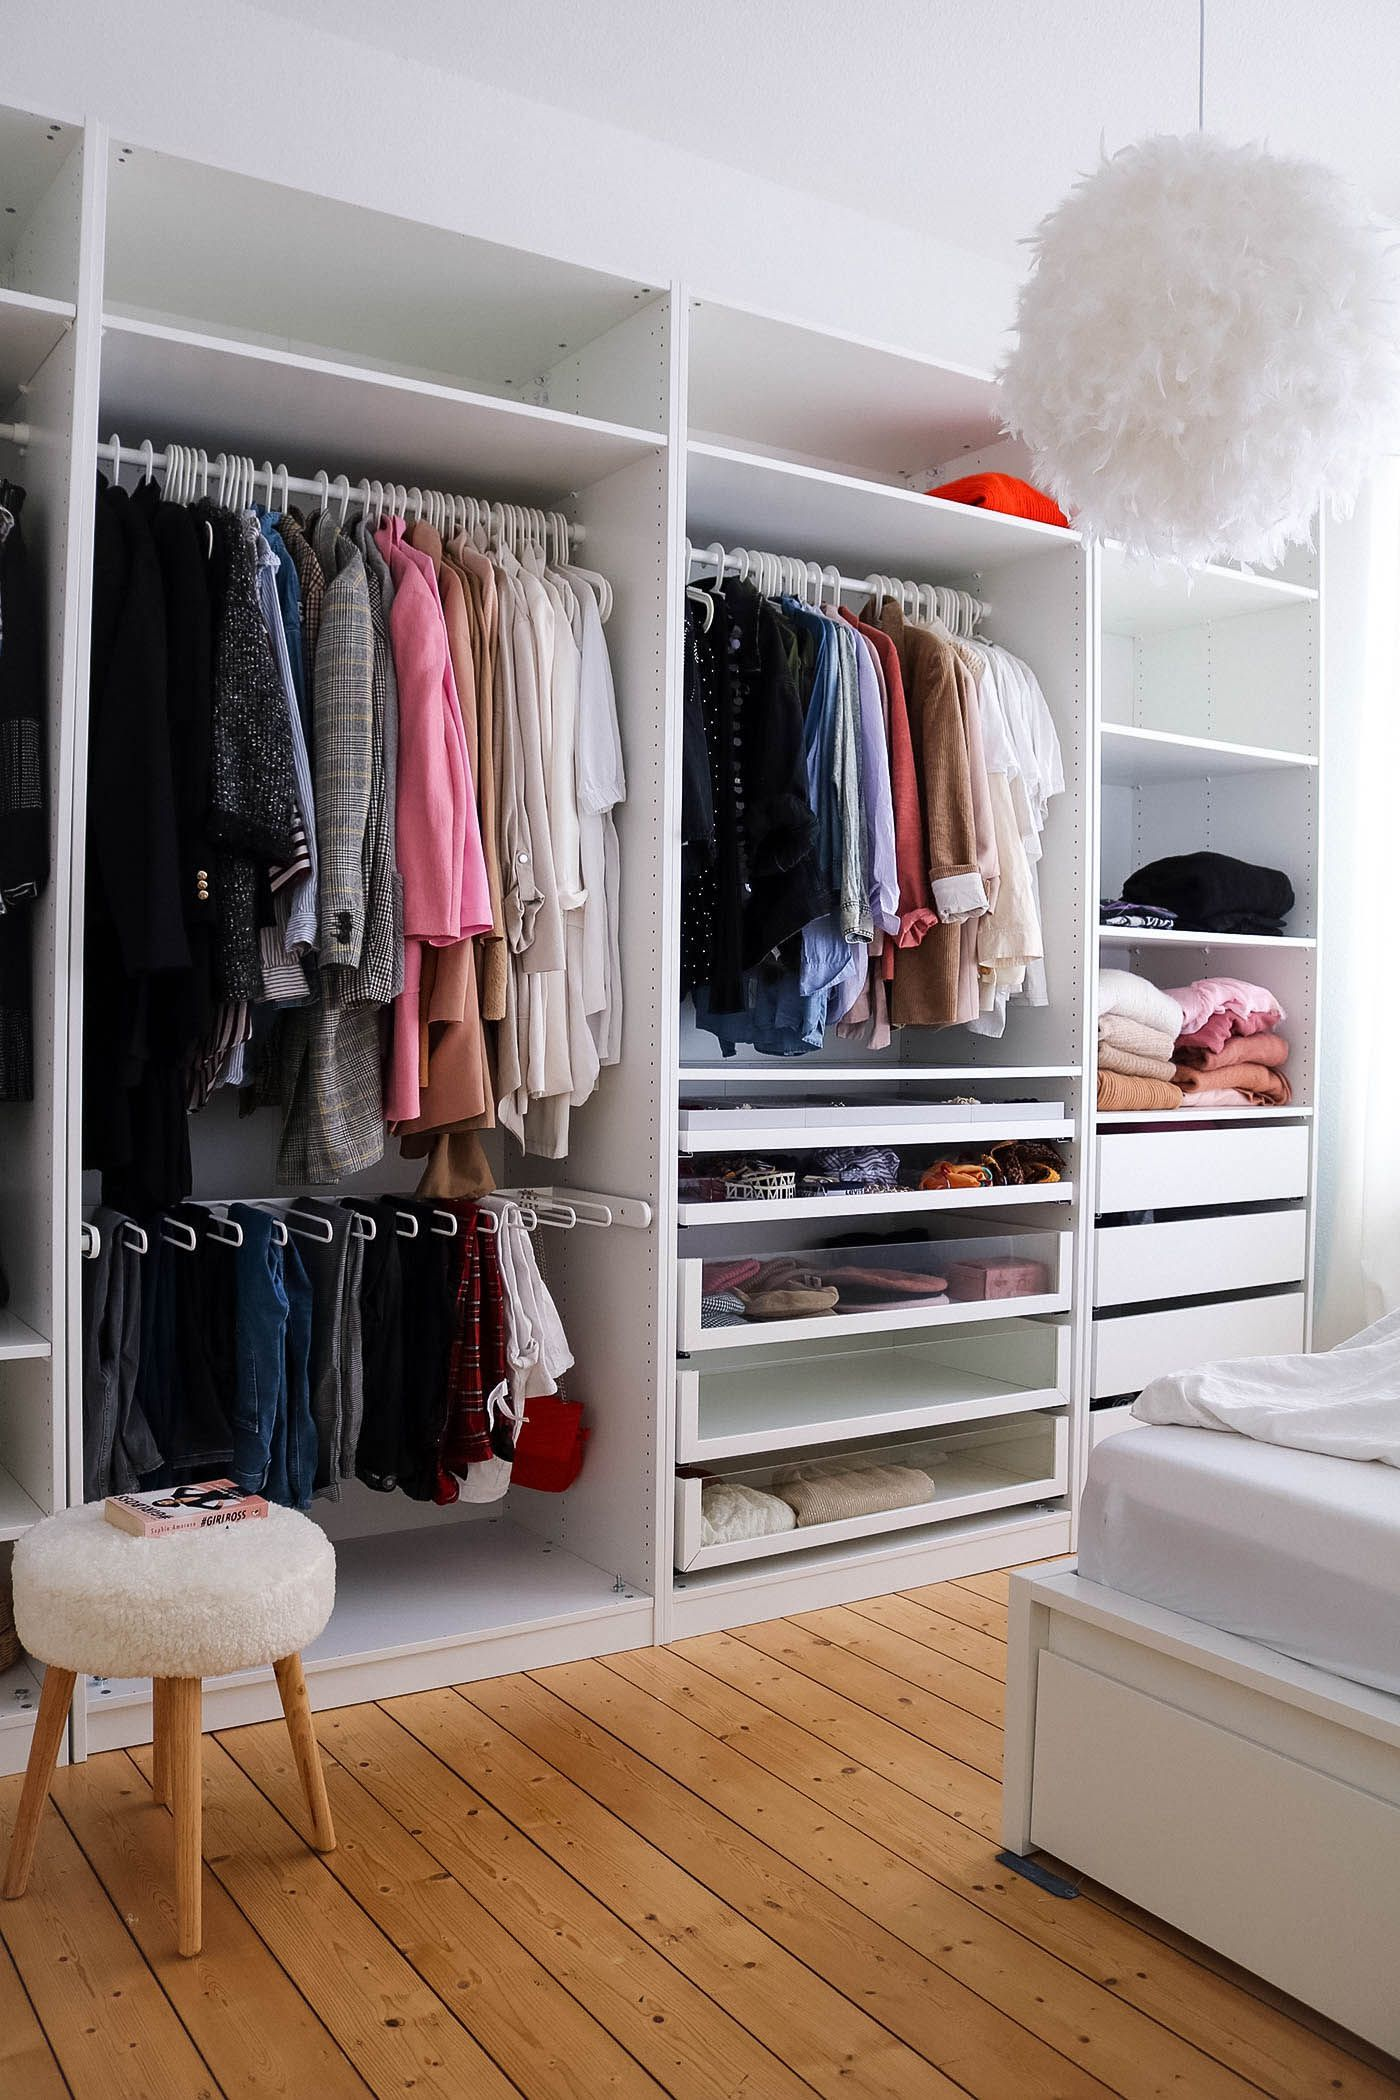 Excellent Photos Flat Home Interior Ikea Pax Wardrobe Inspo